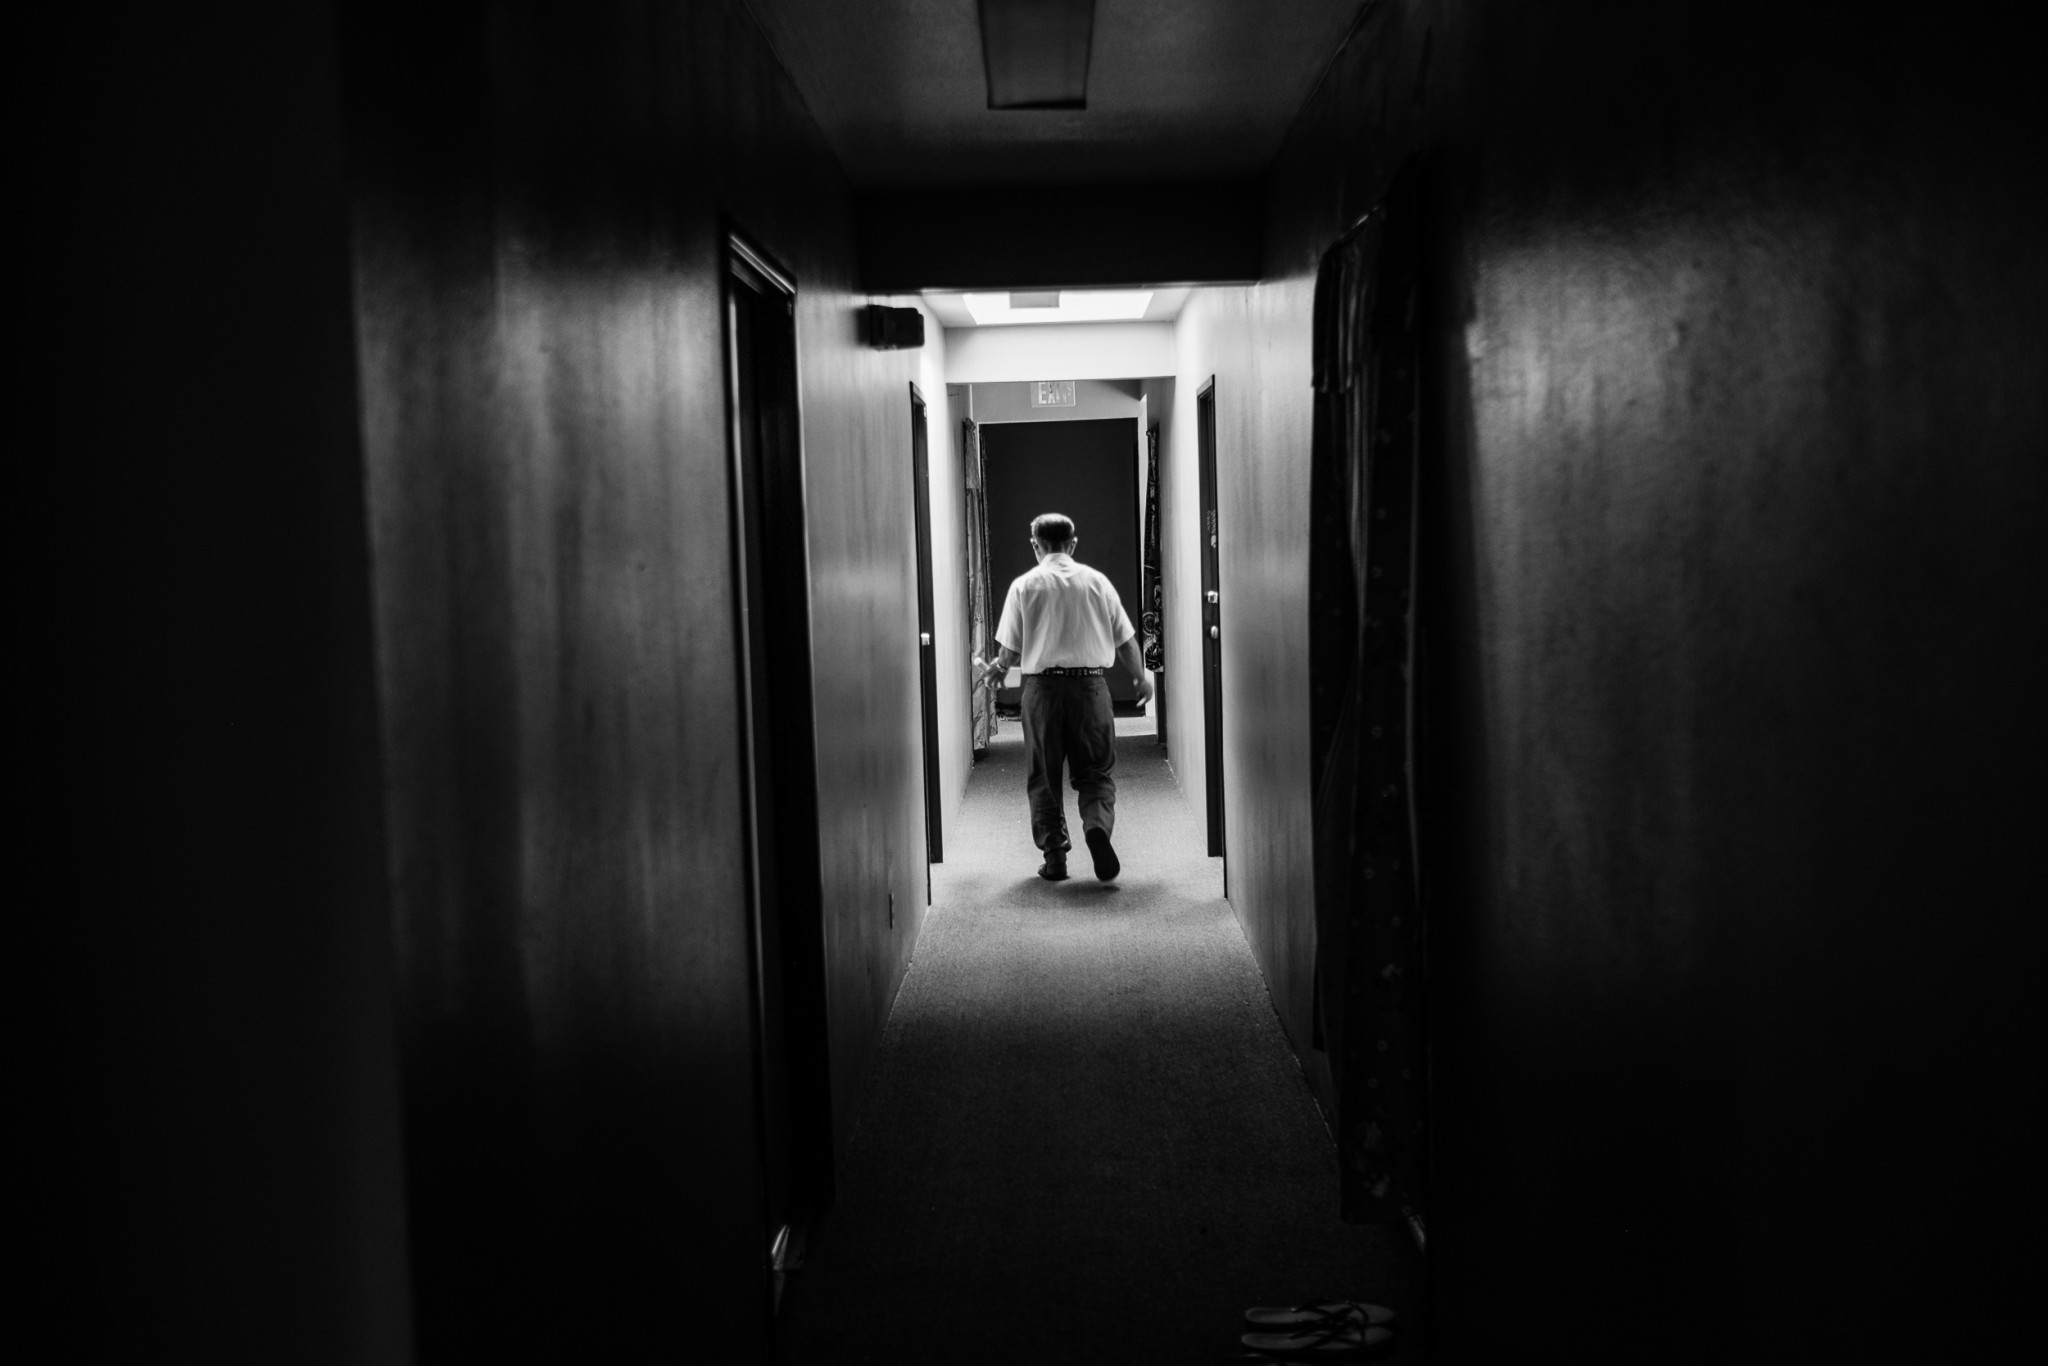 A senior resident of a Chinatown SRO apartment building walks down a hallway, lit only by a single skylight. (Photo by Bear Guerra)